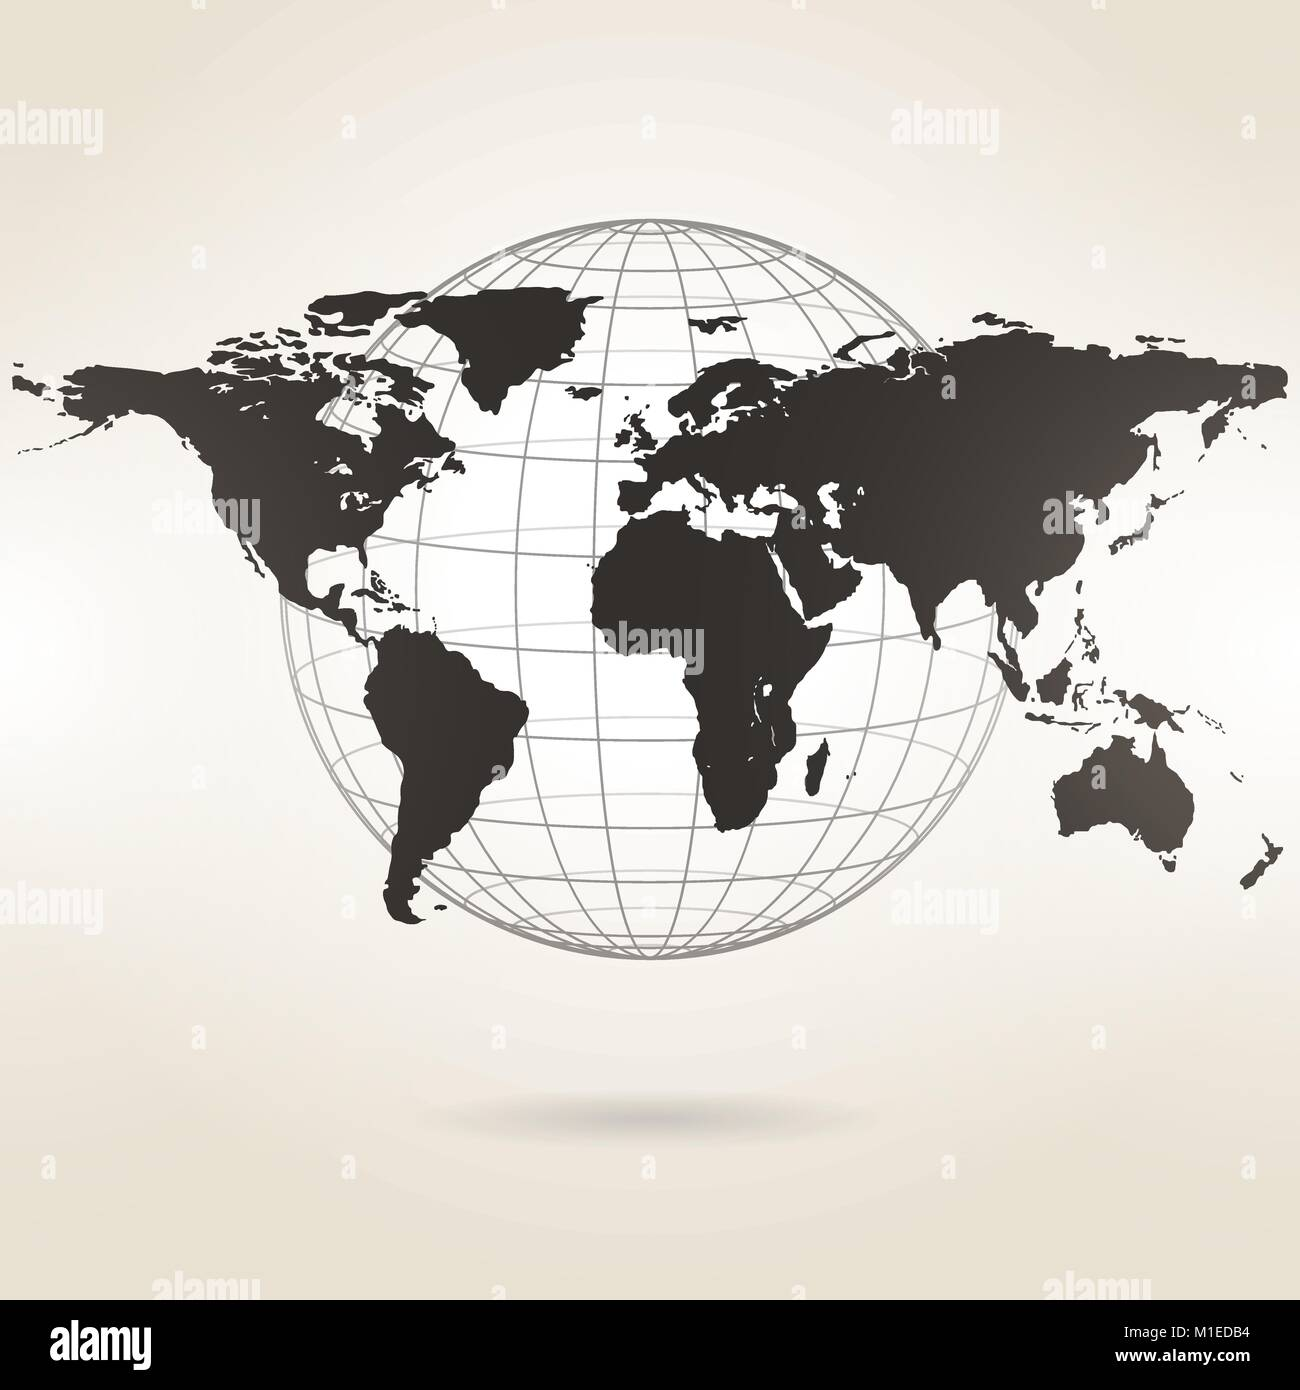 World map on a light background stock vector art illustration world map on a light background sciox Image collections